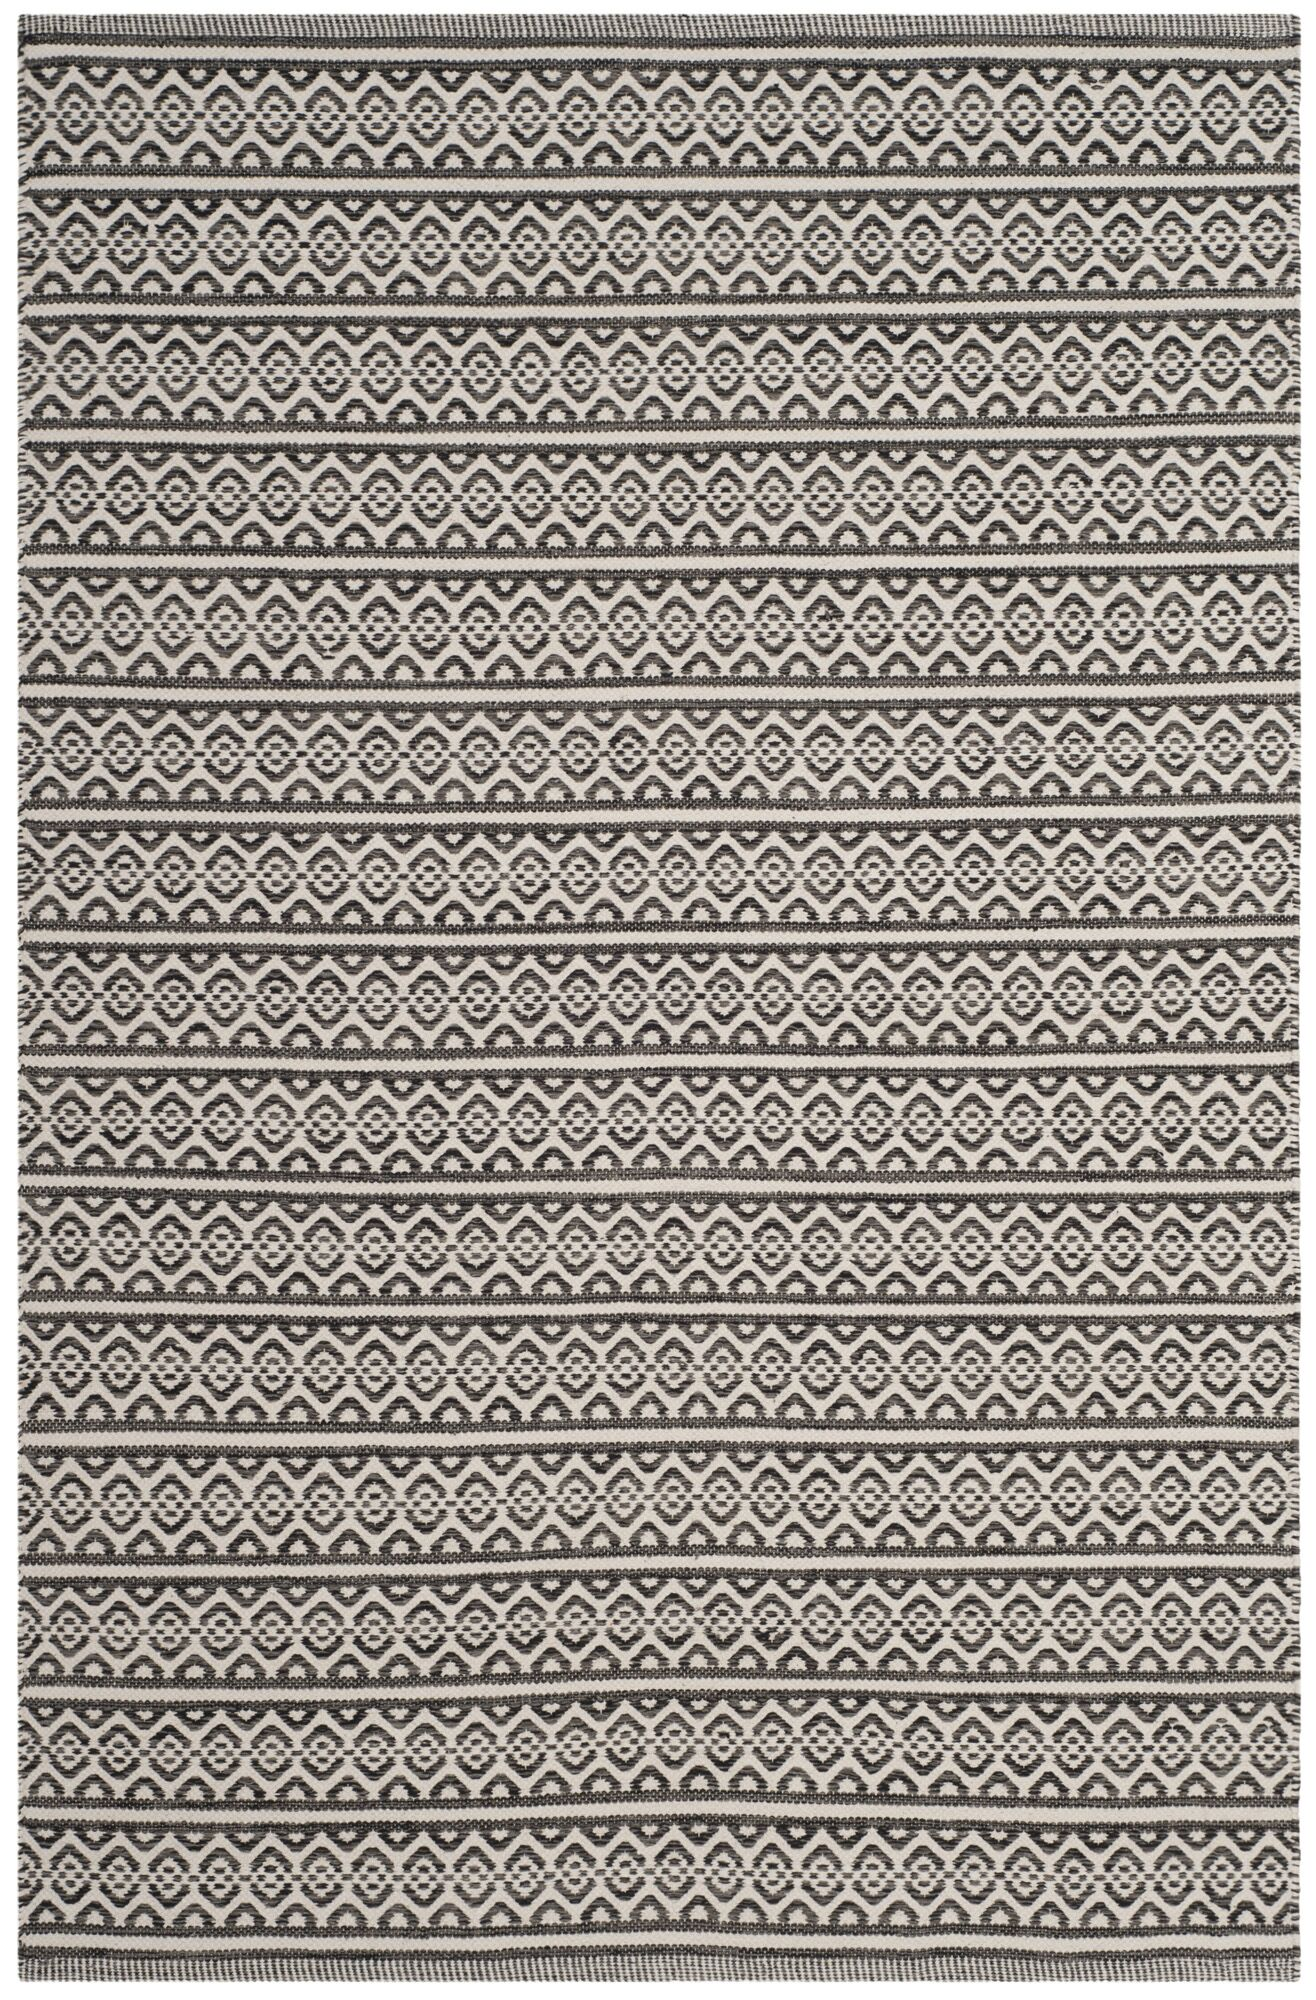 Oxbow Hand-Woven Cotton Ivory/Black Area Rug Rug Size: Rectangle 4' x 6'